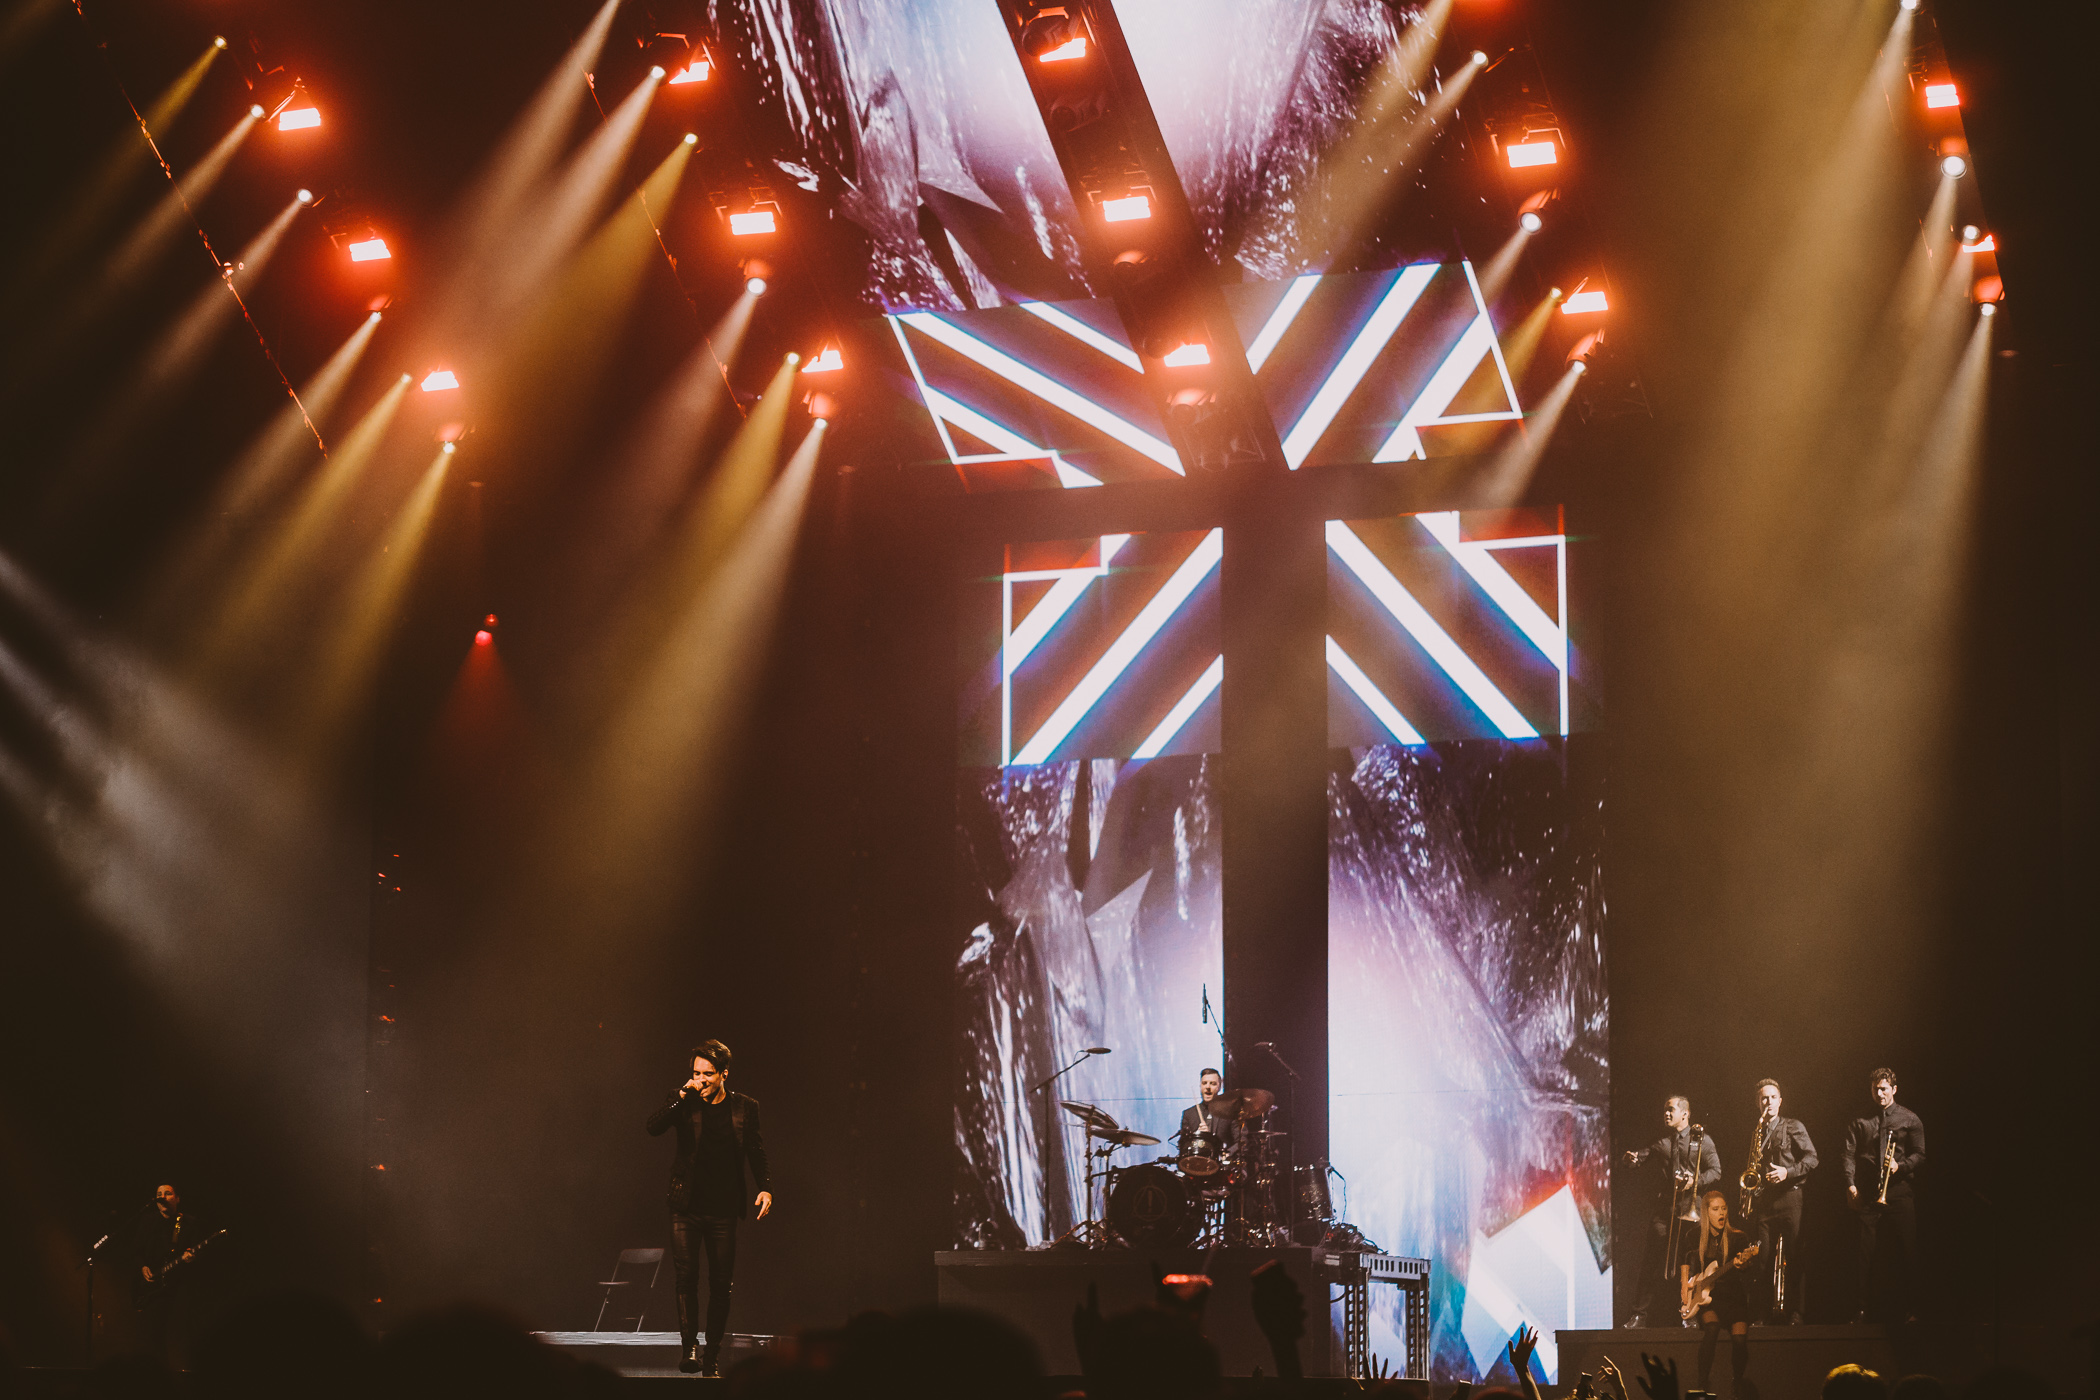 1_Panic!_At_The_Disco-Rogers_Arena-Timothy_Nguyen-20180811-3.jpg